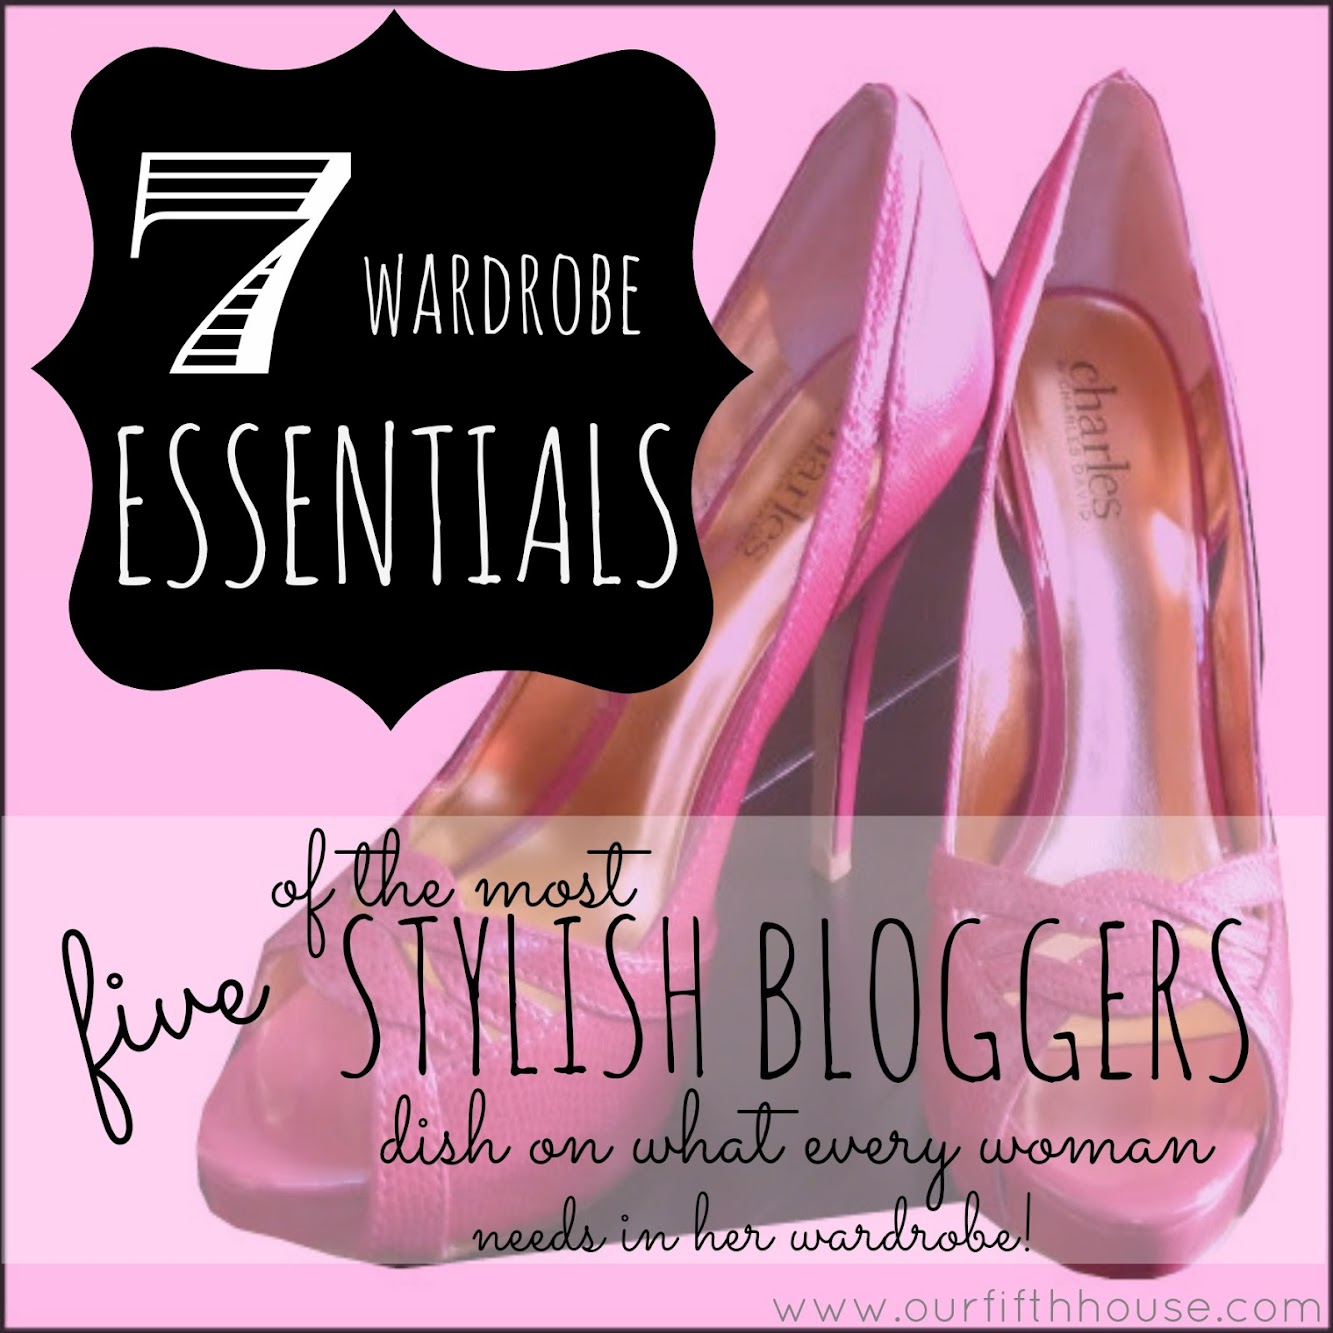 7 Wardrobe Essentials